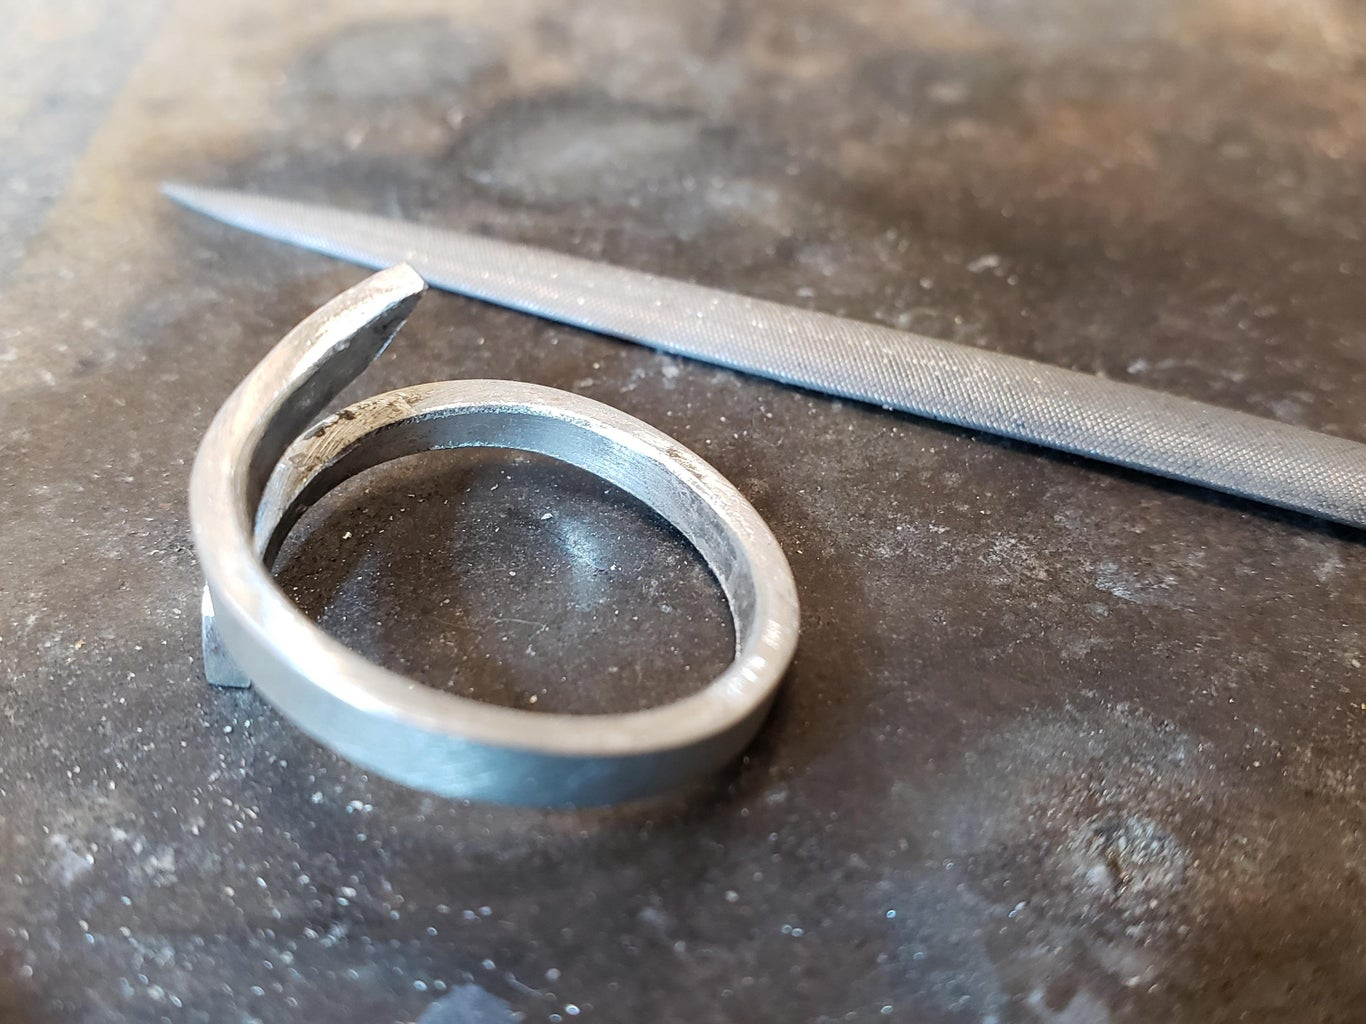 Shaping the Ring